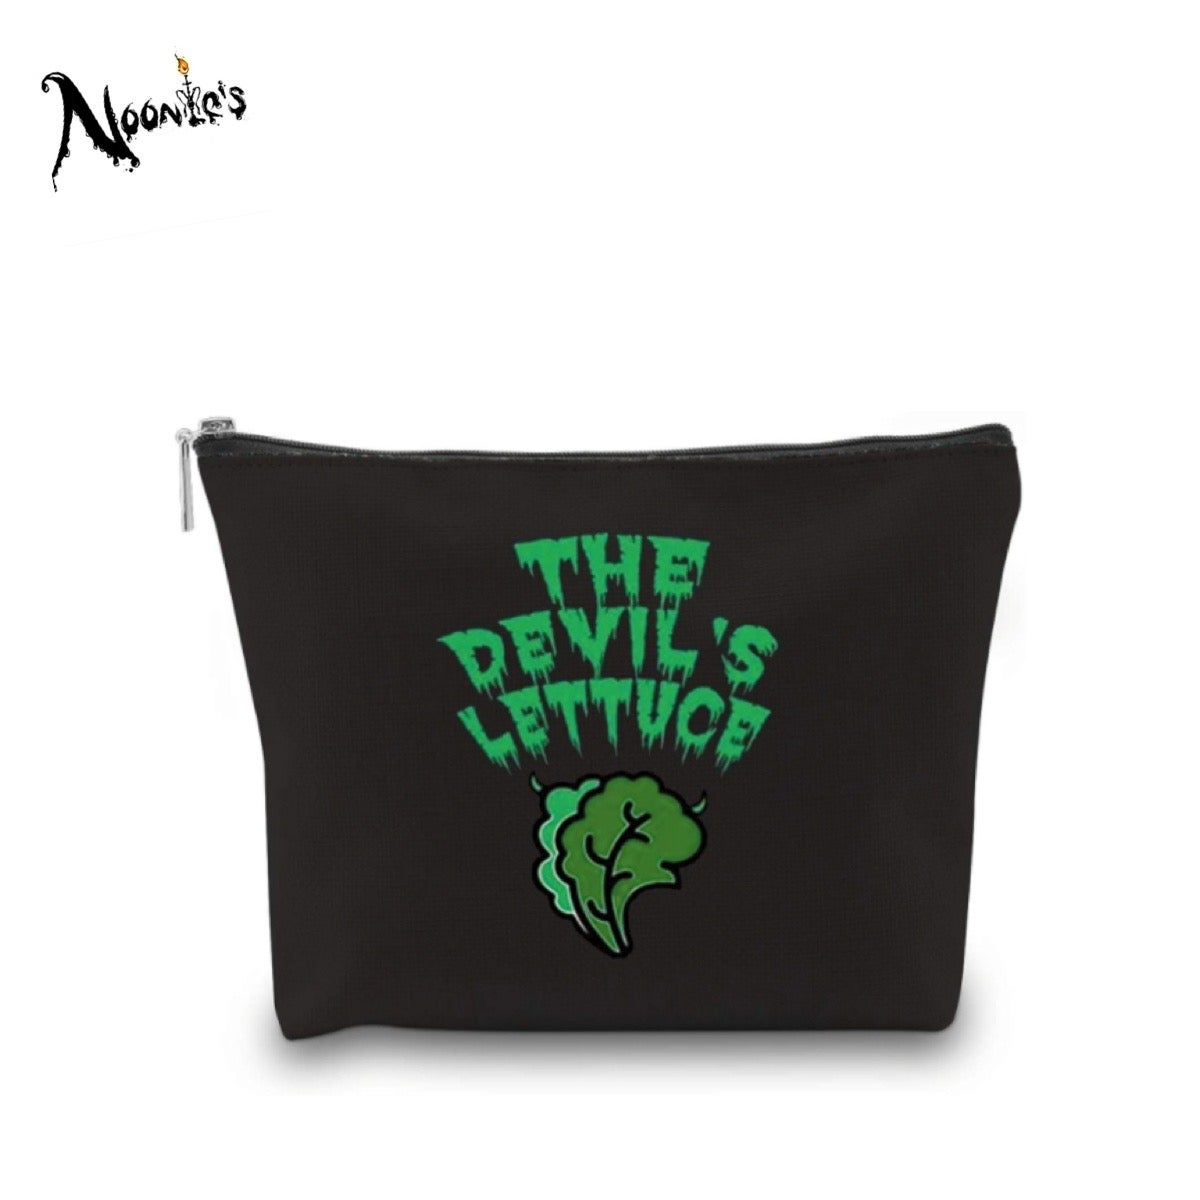 Image of Smoked Lettuce carry bag